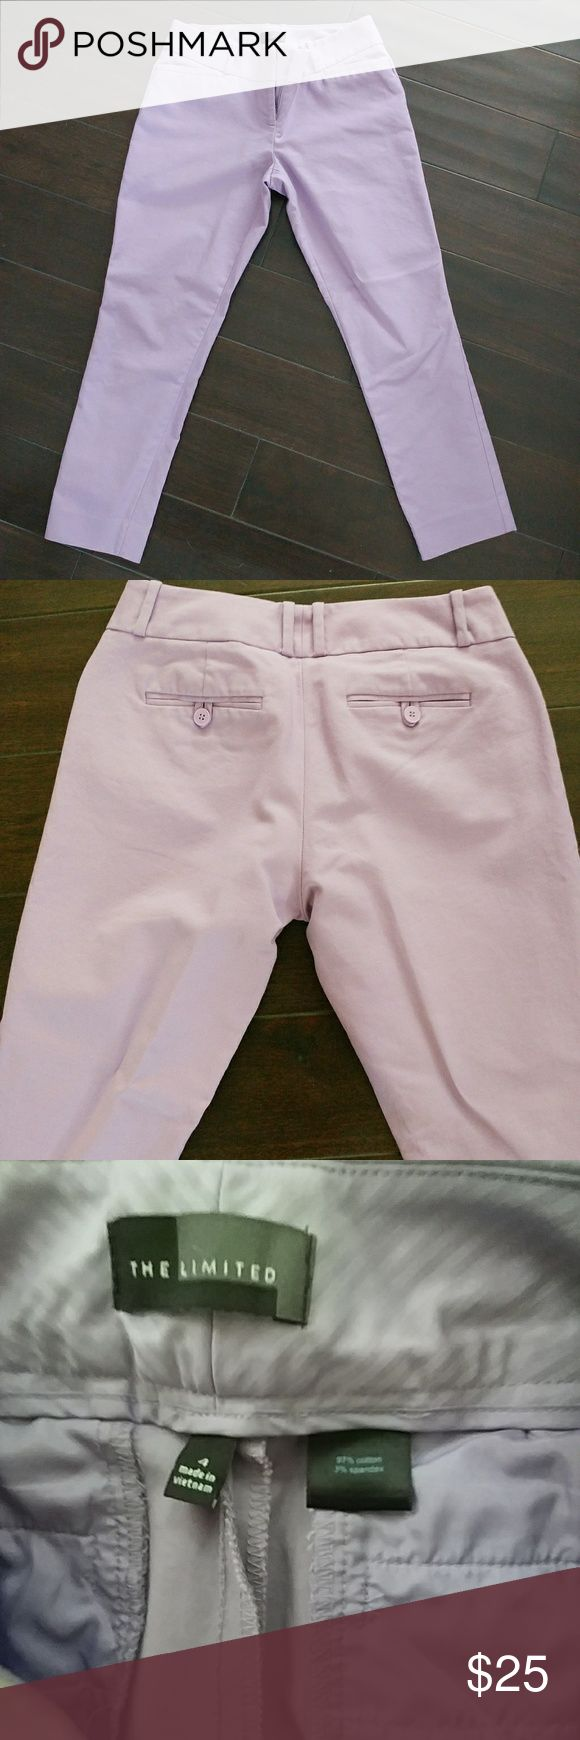 The Limited pastel purple ankle skinny pants sz 4 Like new lilac pants. Casual and dressy, perfect for your summer outfits. The Limited Pants Ankle & Cropped